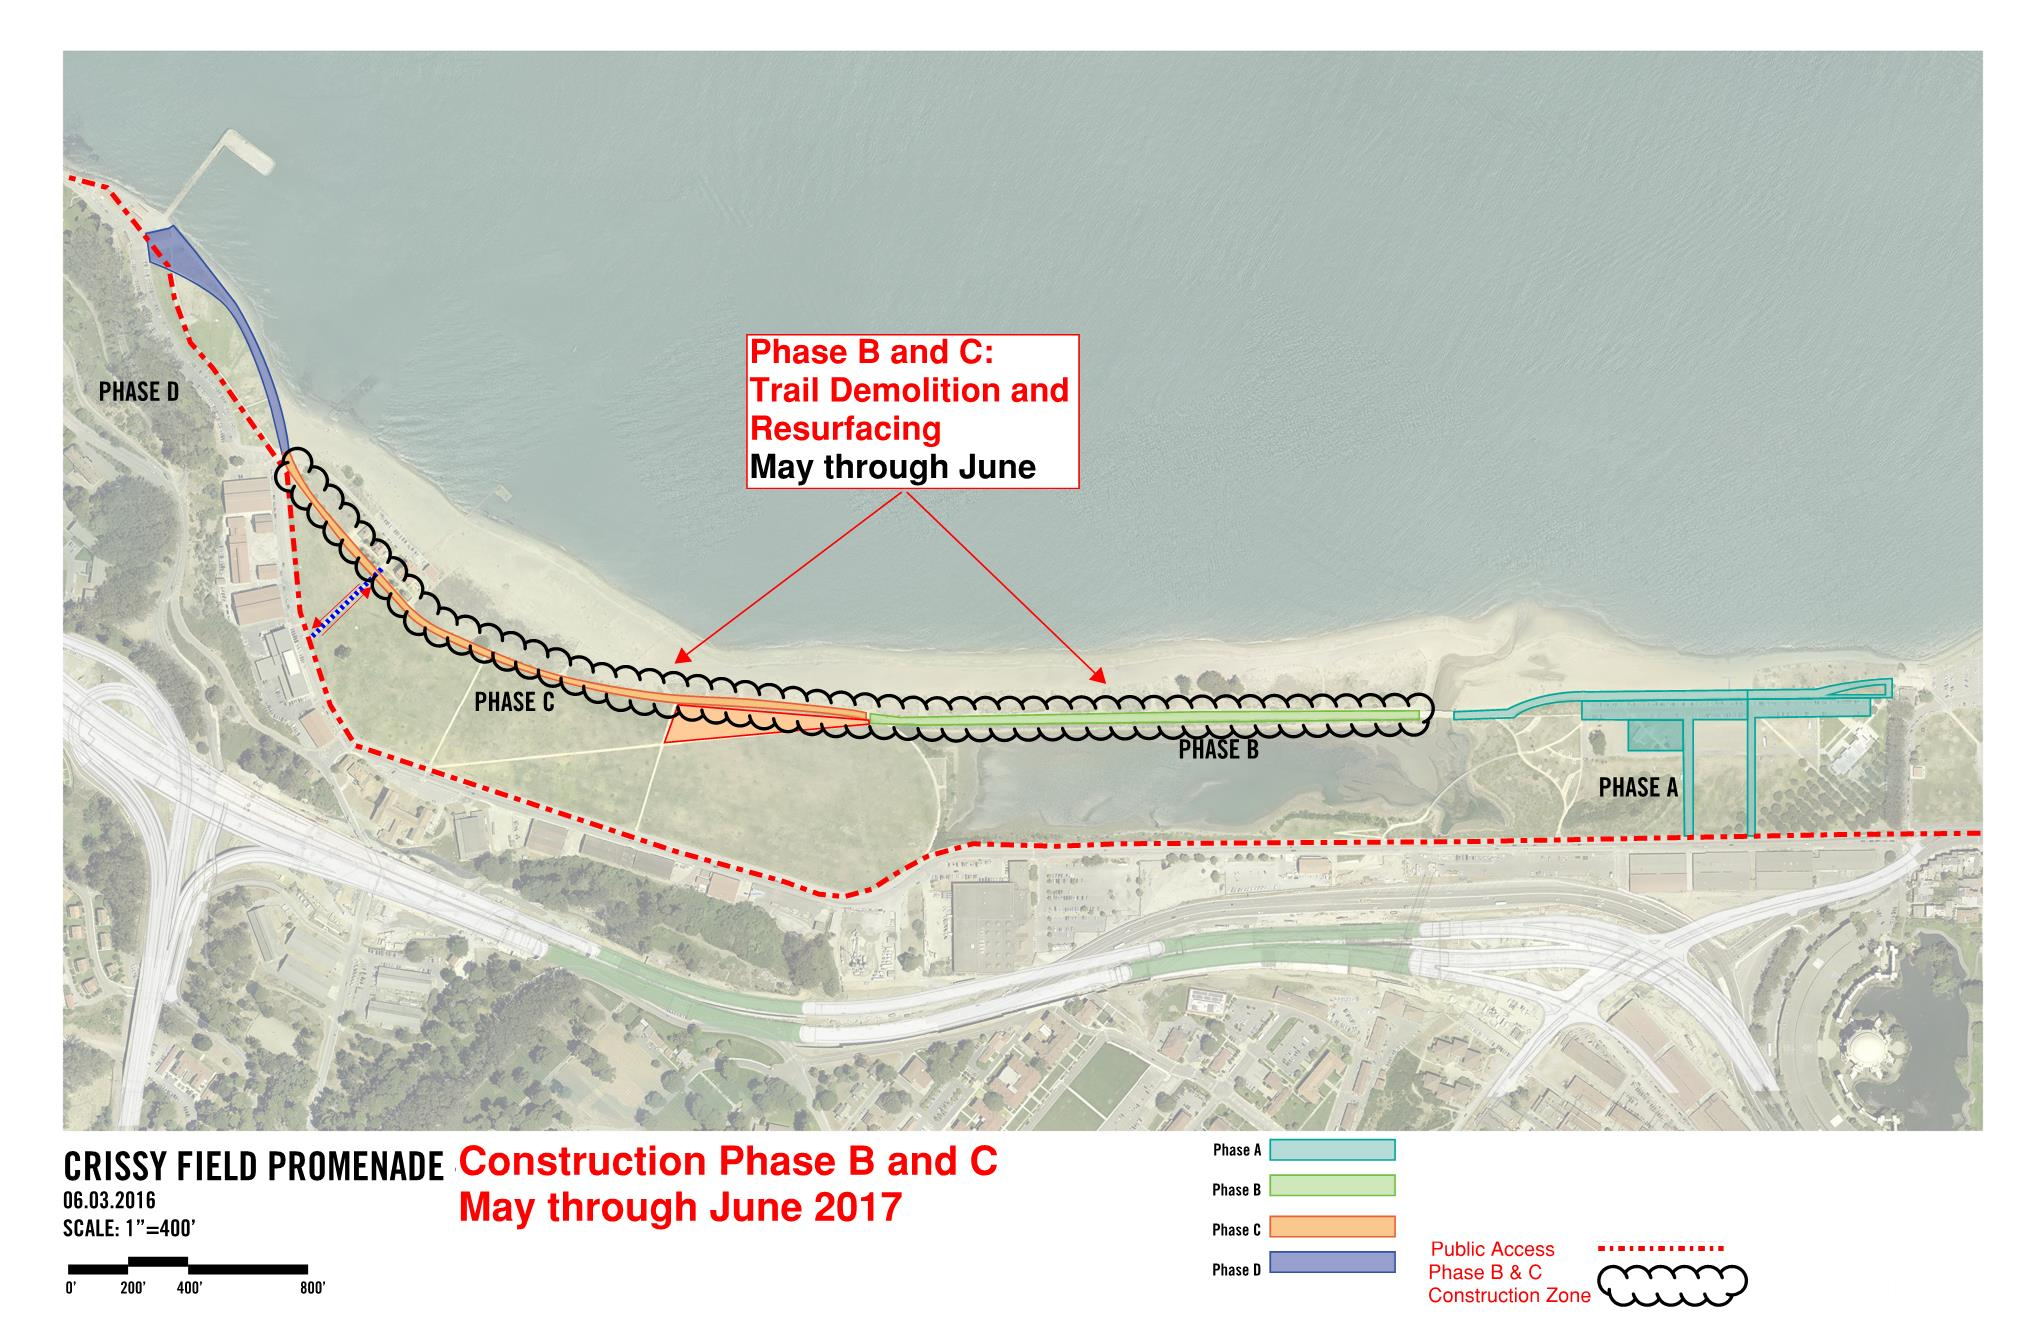 This map shows the construction closures and detour route for phases B and C of the Promenade repair project. The closure begins at the West end of East Beach and continues to the entrance of the NOAA building. The detour route is the Mason St Path